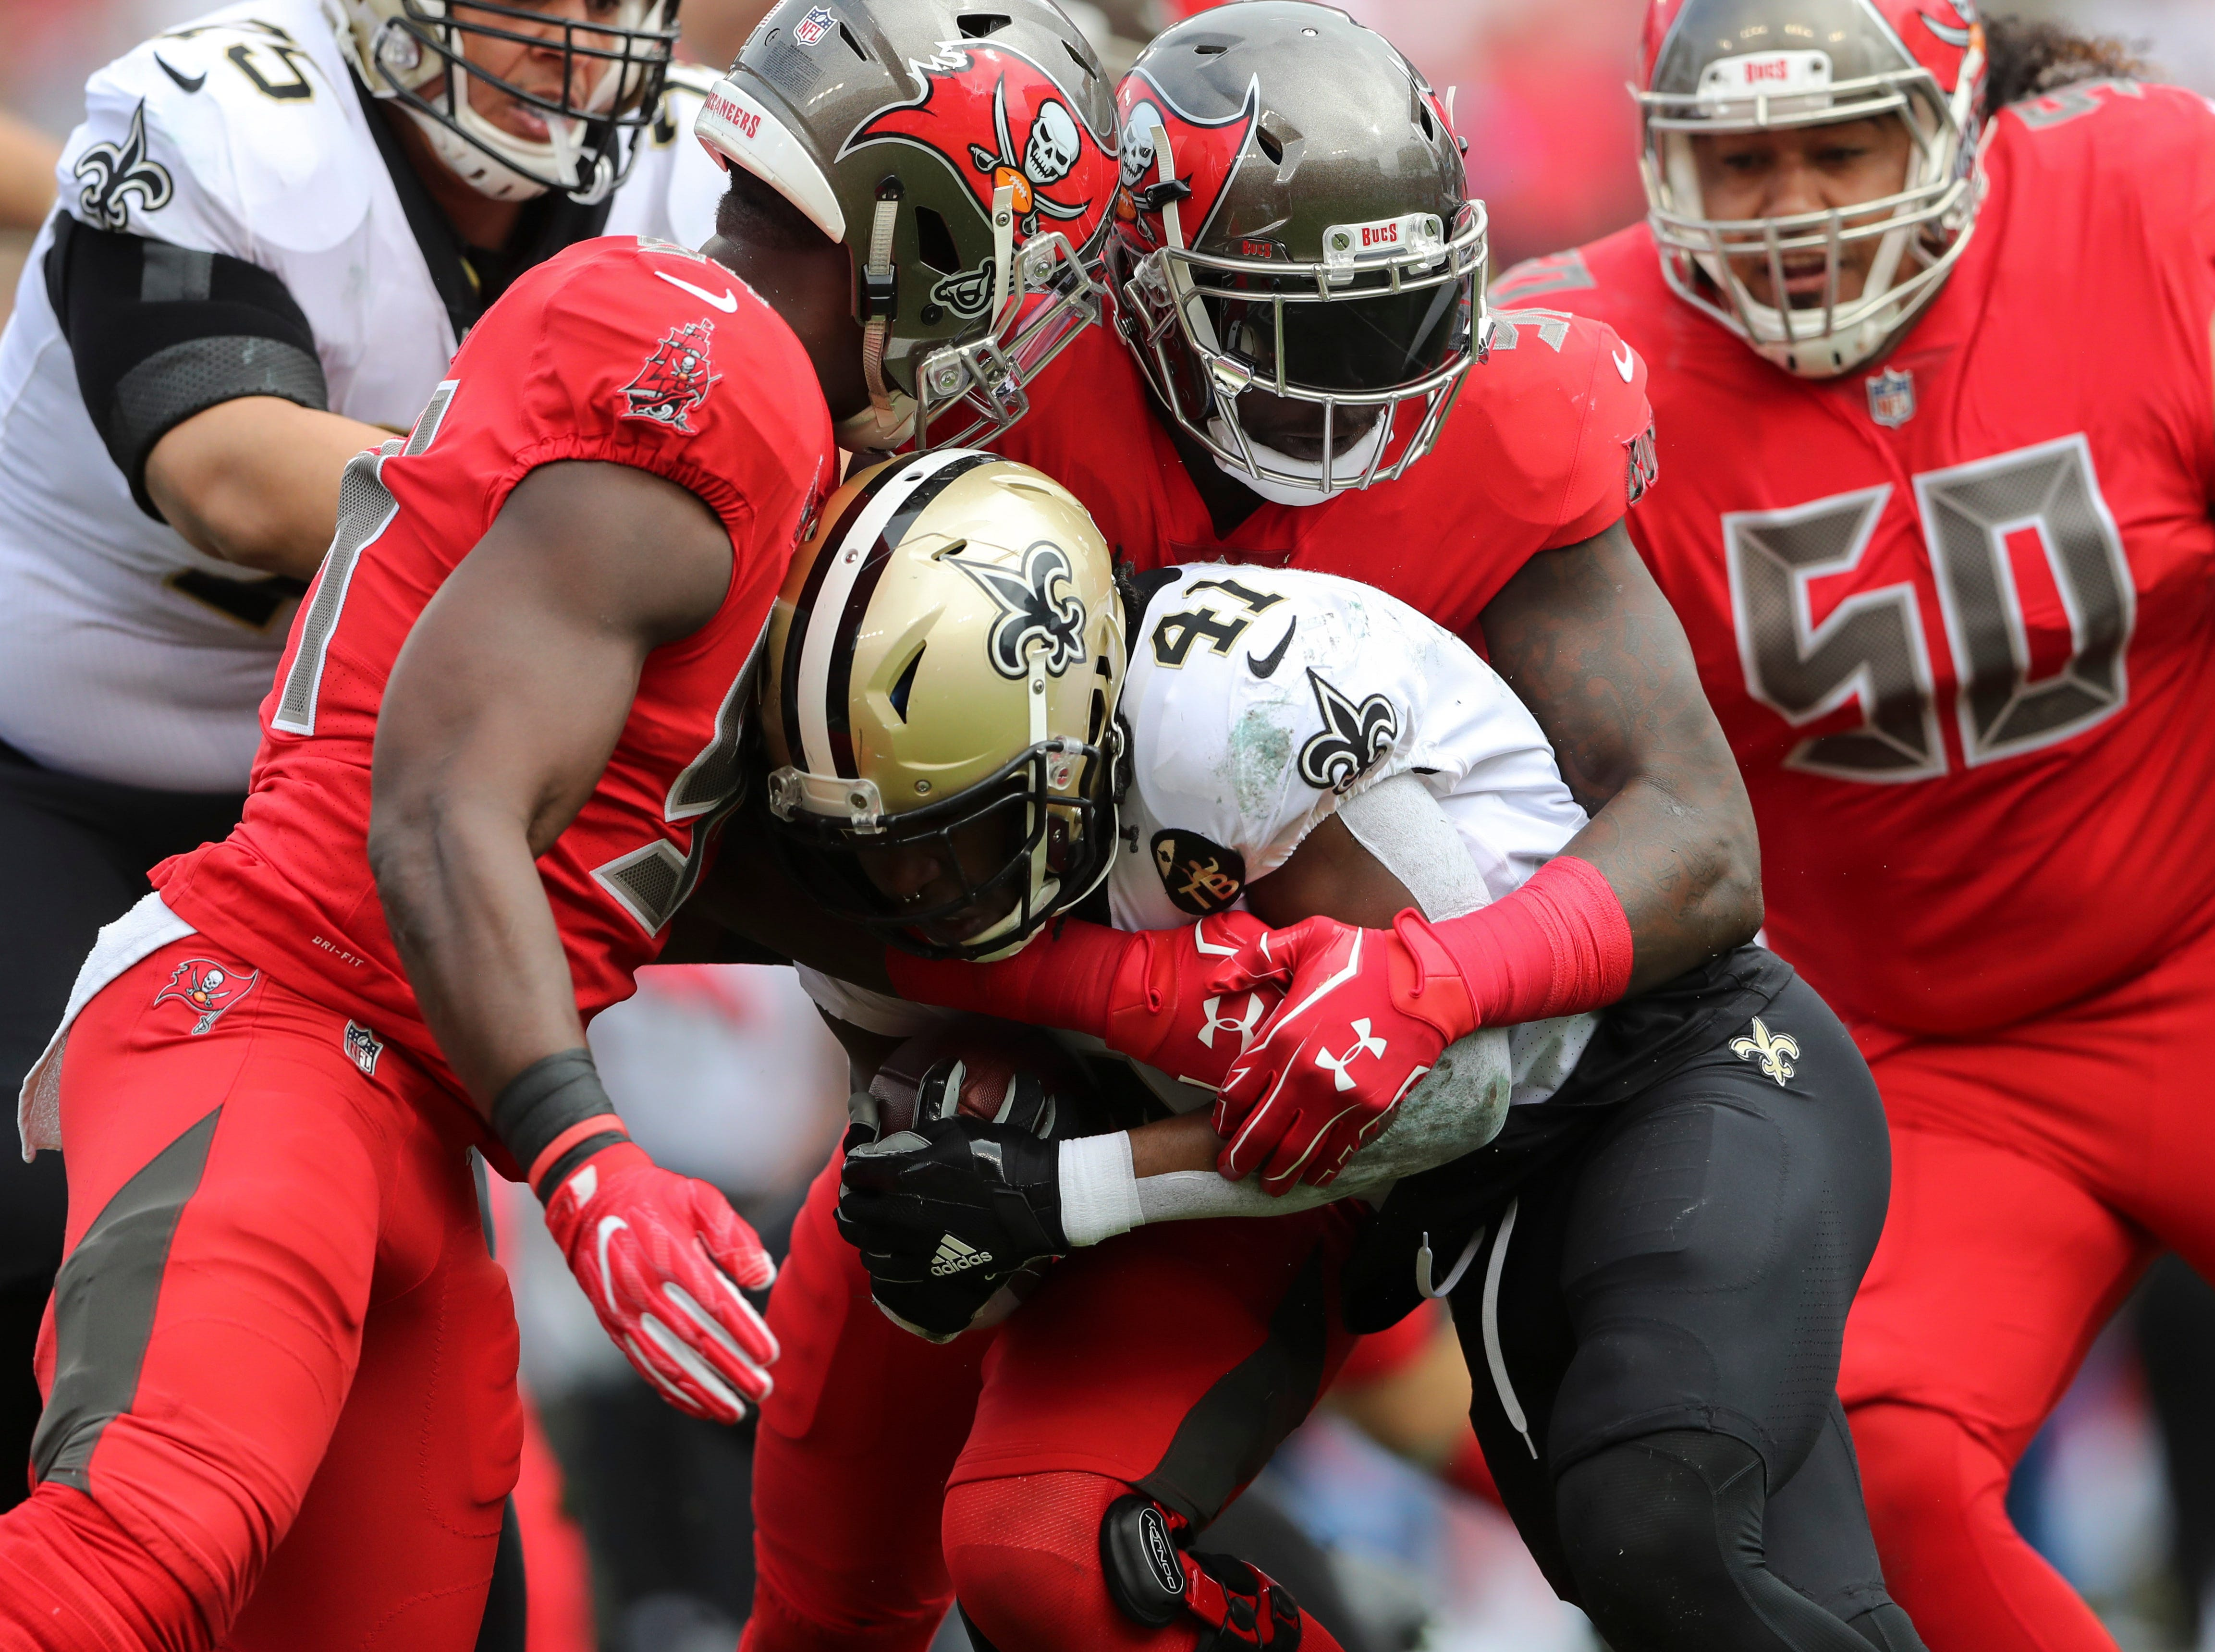 Saints win second consecutive NFC South title, 28-14, against Buccaneers